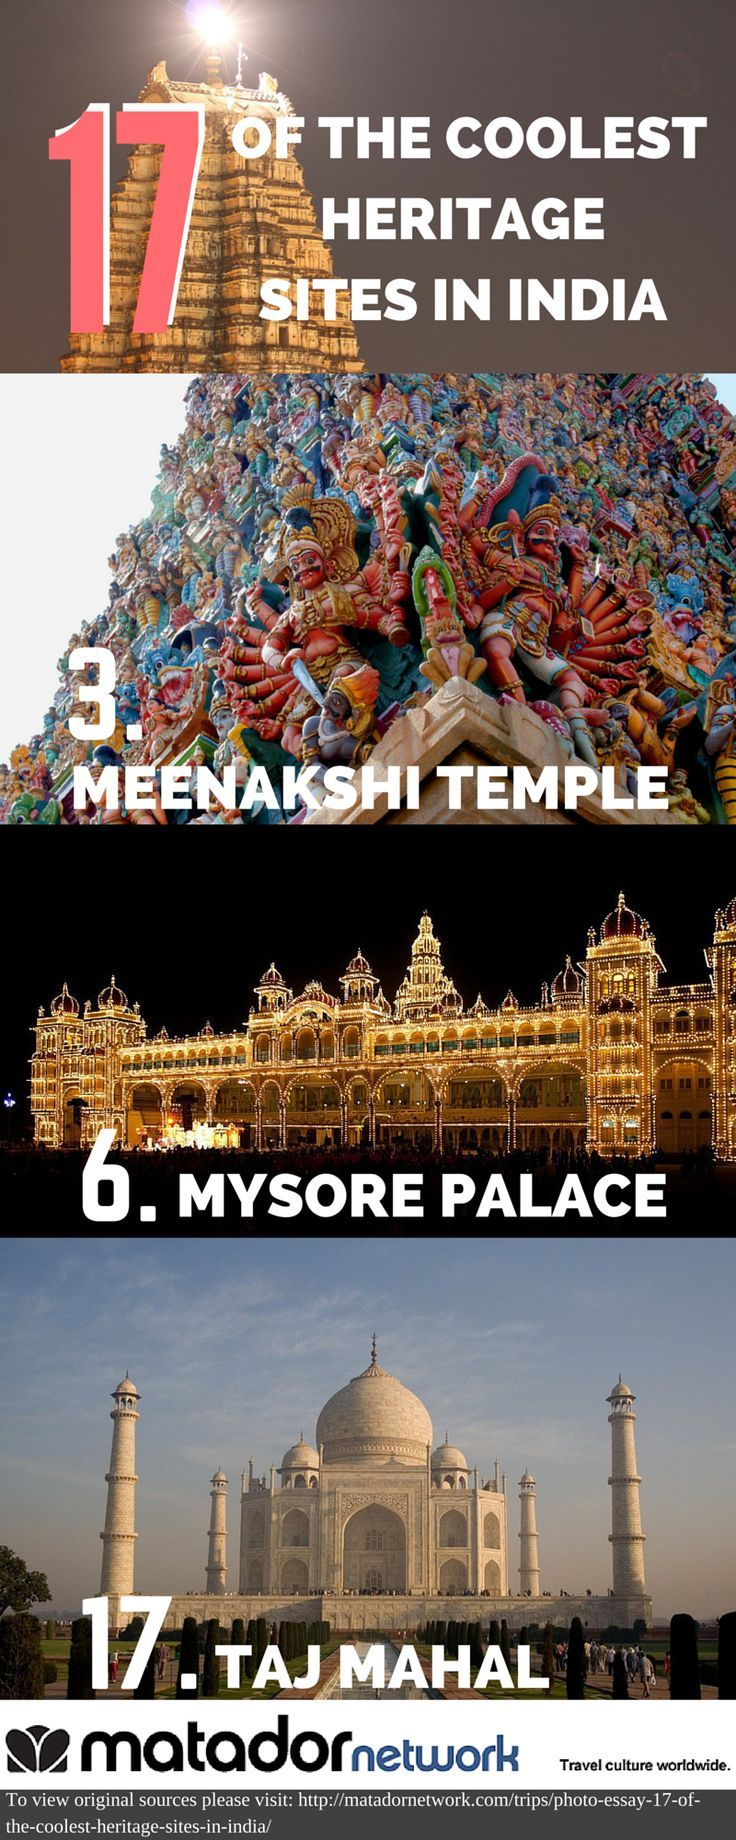 essay on mysore palace Mysore is most famous for the majestic mysore palace, undoubtedly one of india's most spectacular royal buildings but don't just visit the palace – there is much more to explore in mysore  a photo essay haggling for bangles in the market yoga and ayurveda courses in mysore.